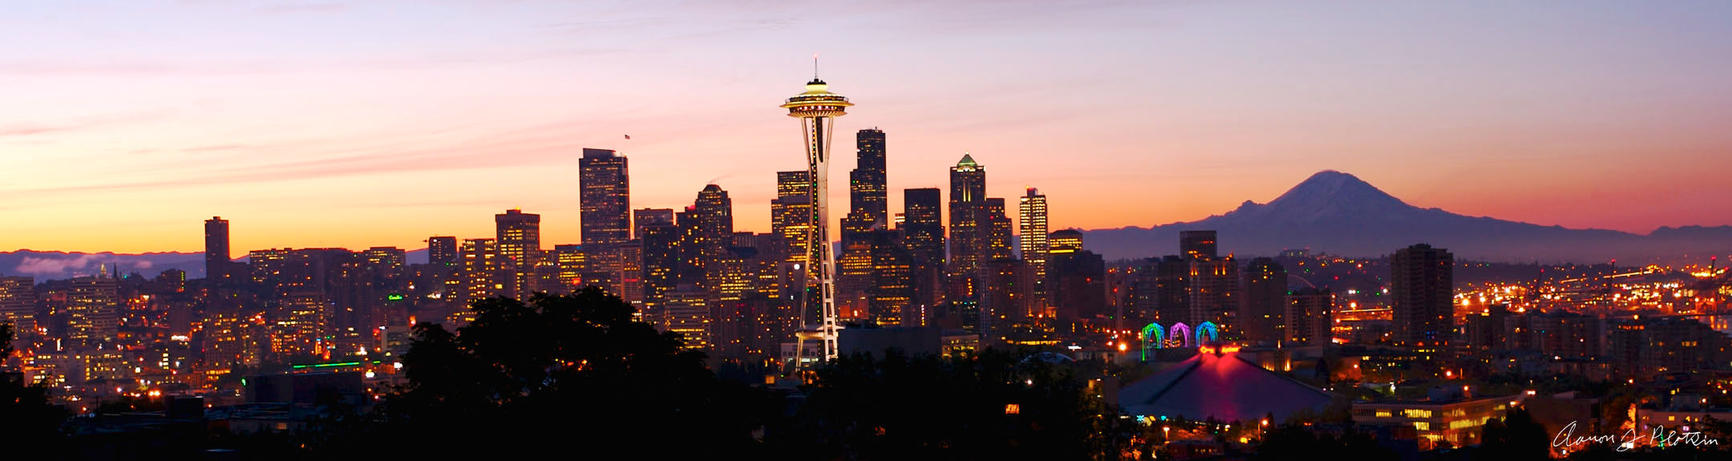 seattle panoramic 1 by photoboy1002001 on deviantart seattle panoramic 1 by photoboy1002001 on deviantart 669